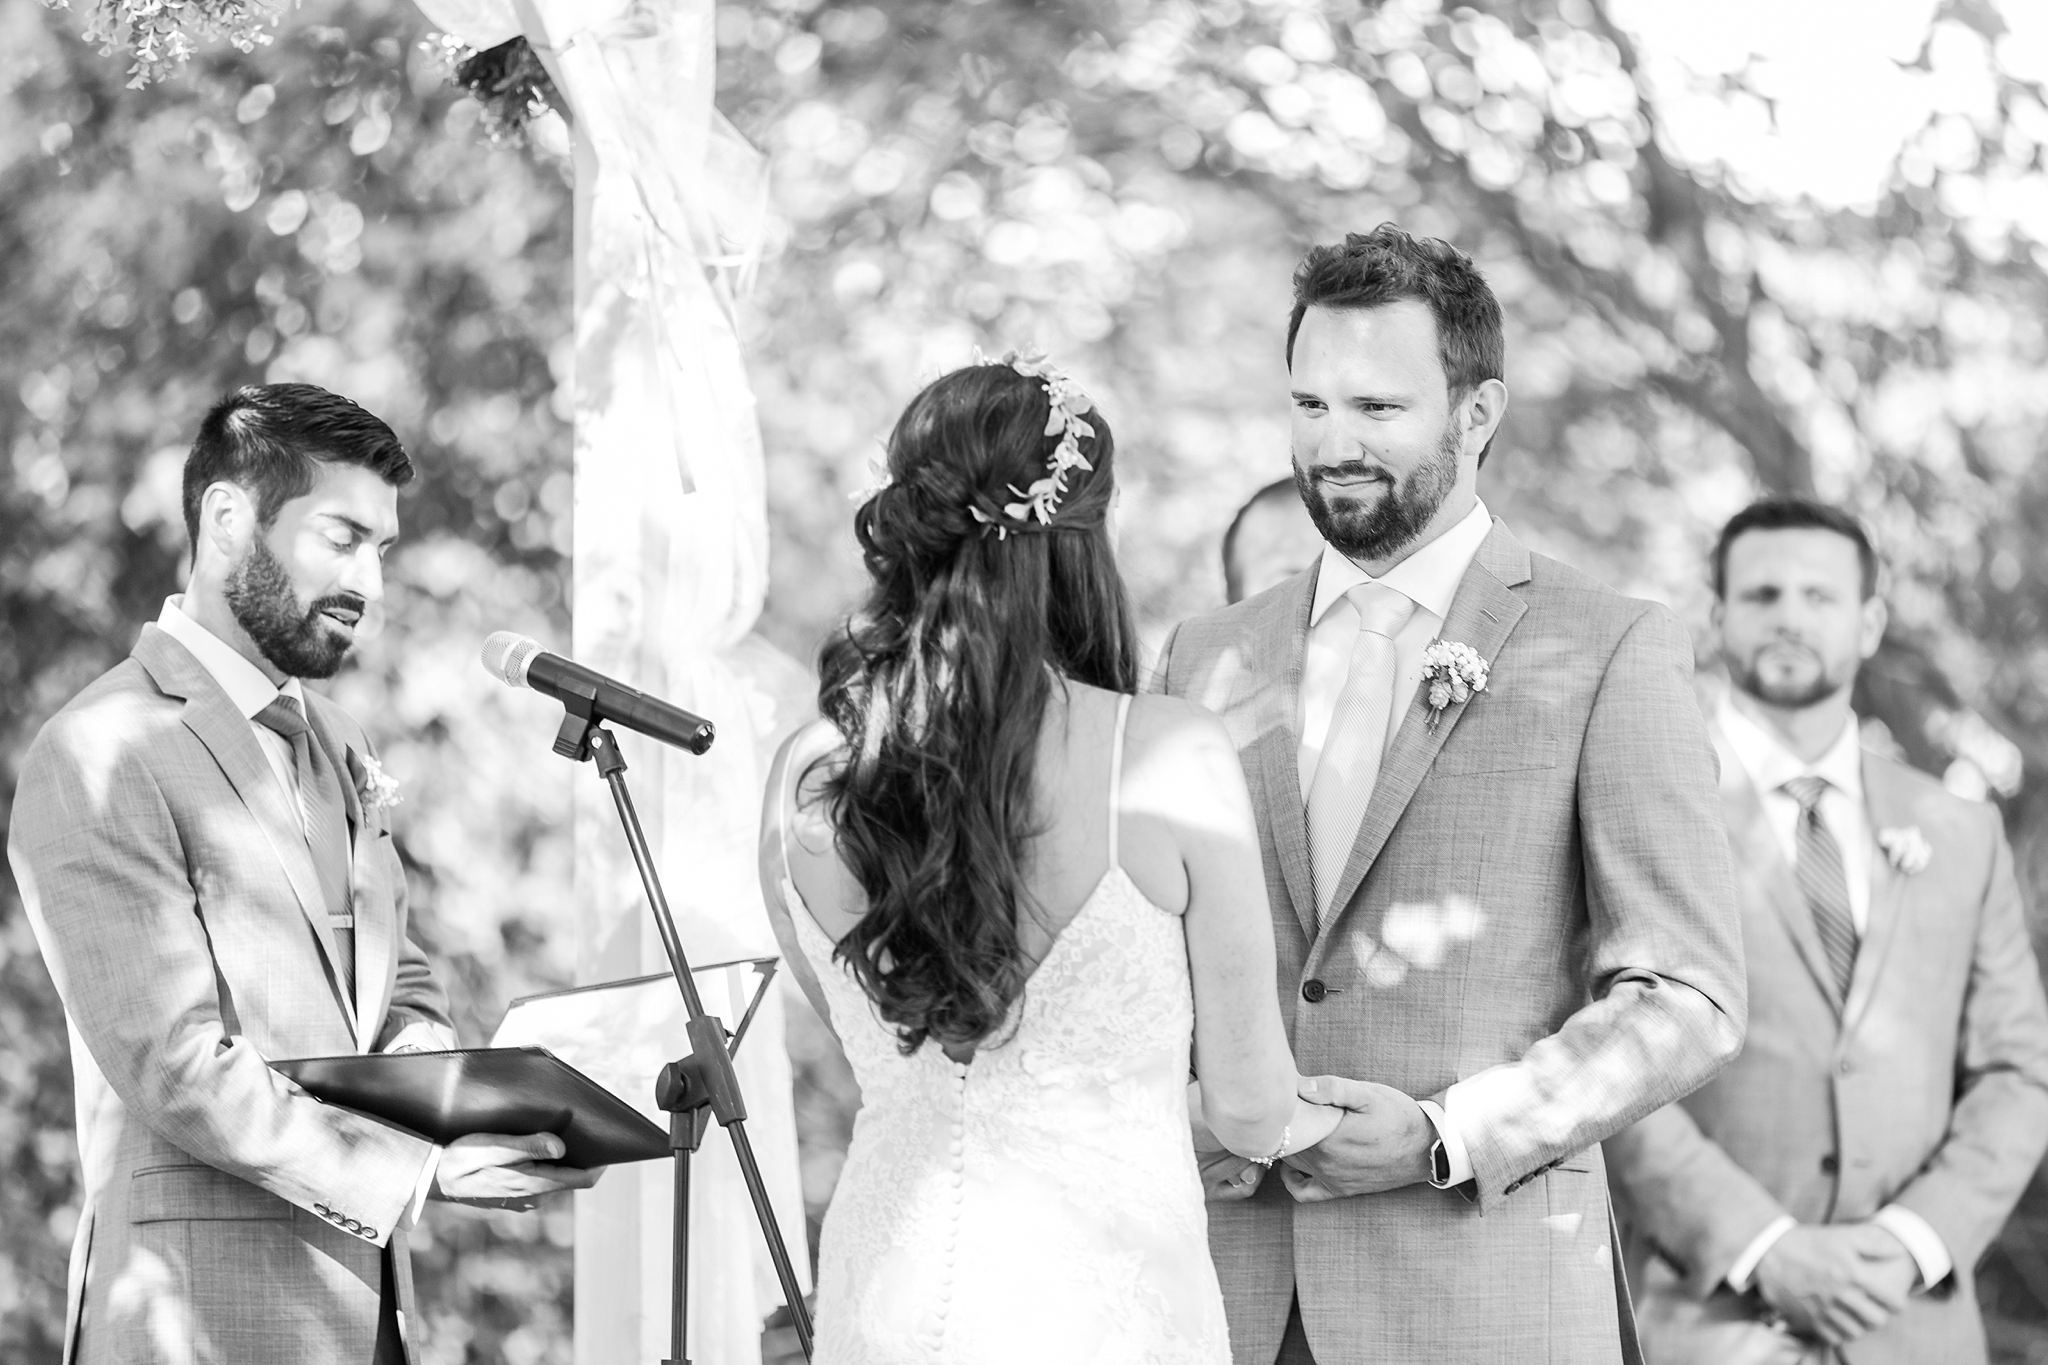 natural-rustic-wedding-photos-at-frutig-farms-the-valley-in-ann-arbor-michigan-by-courtney-carolyn-photography_0065.jpg